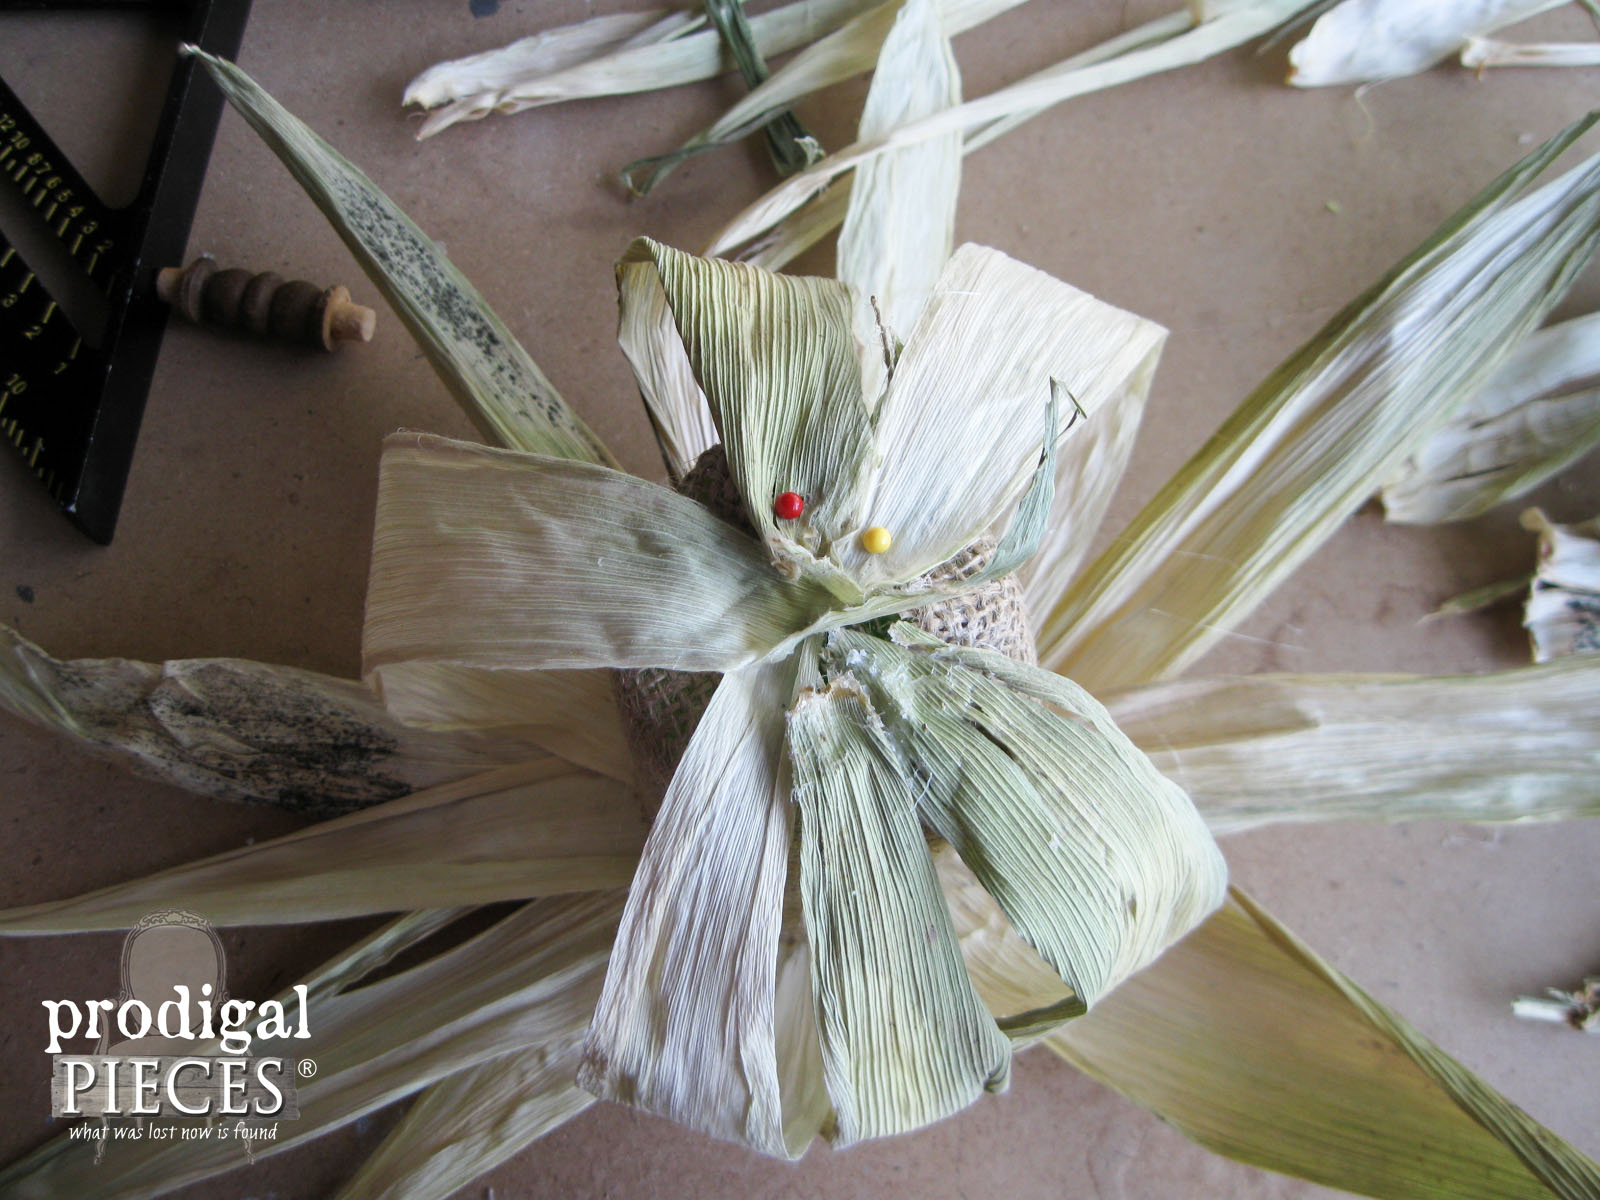 Gluing Corn Husk to make Rustic Pumpkin | Prodigal Pieces | www.prodigalpieces.com